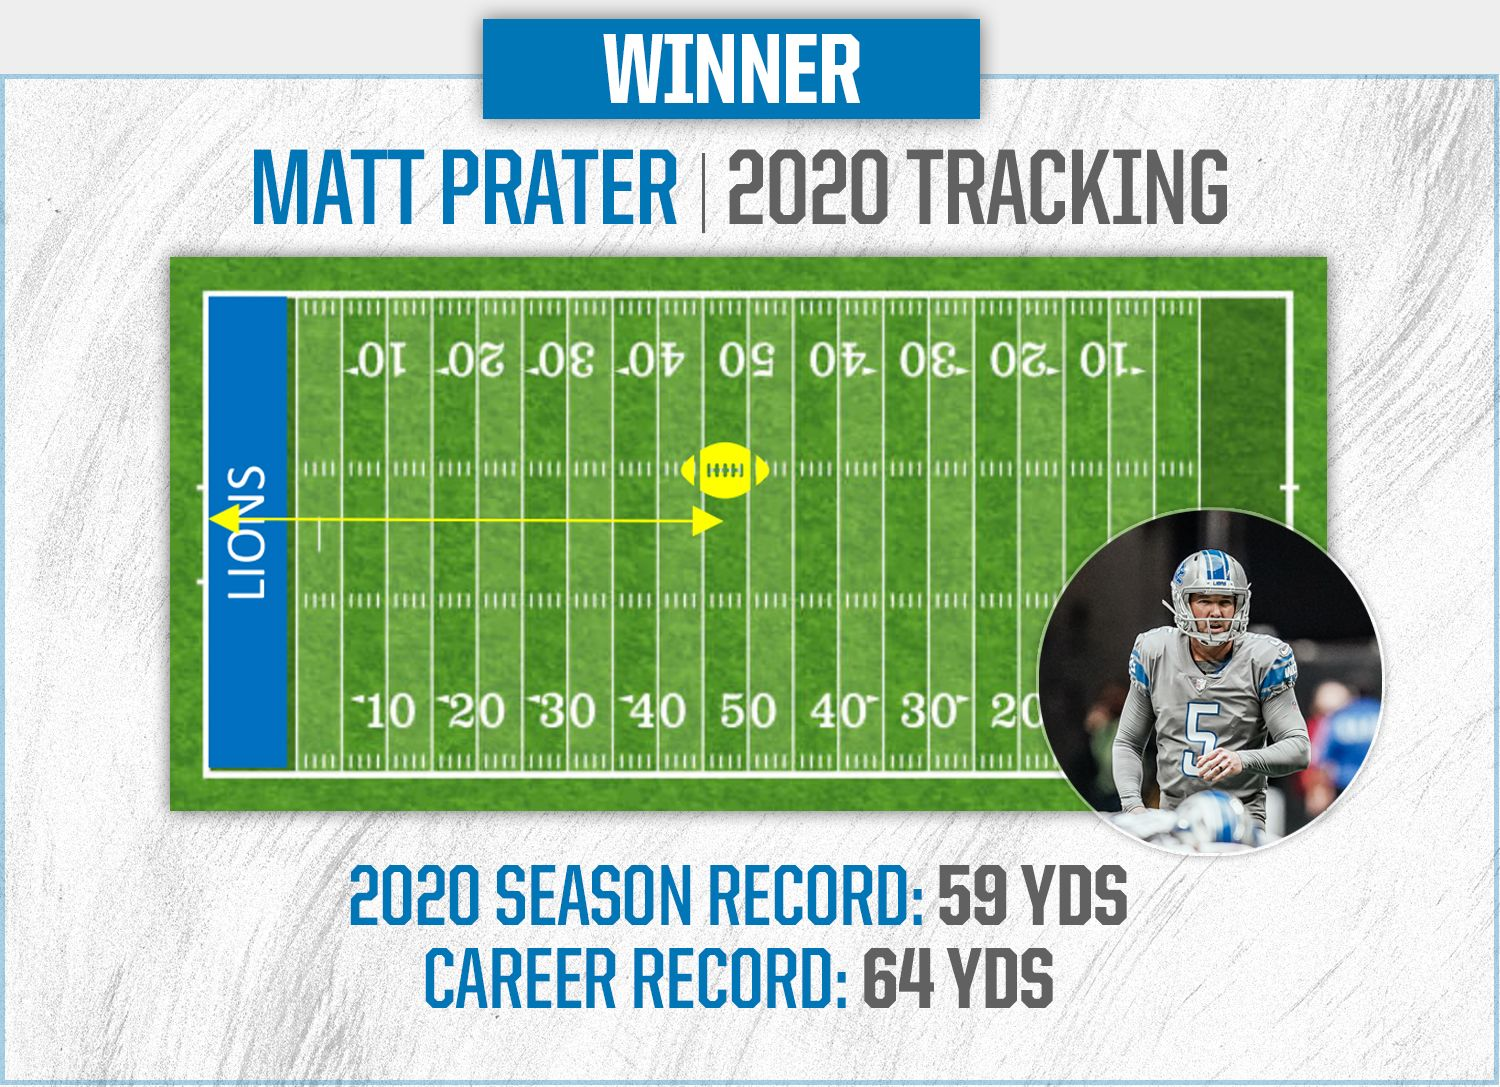 matt-prater-tracker